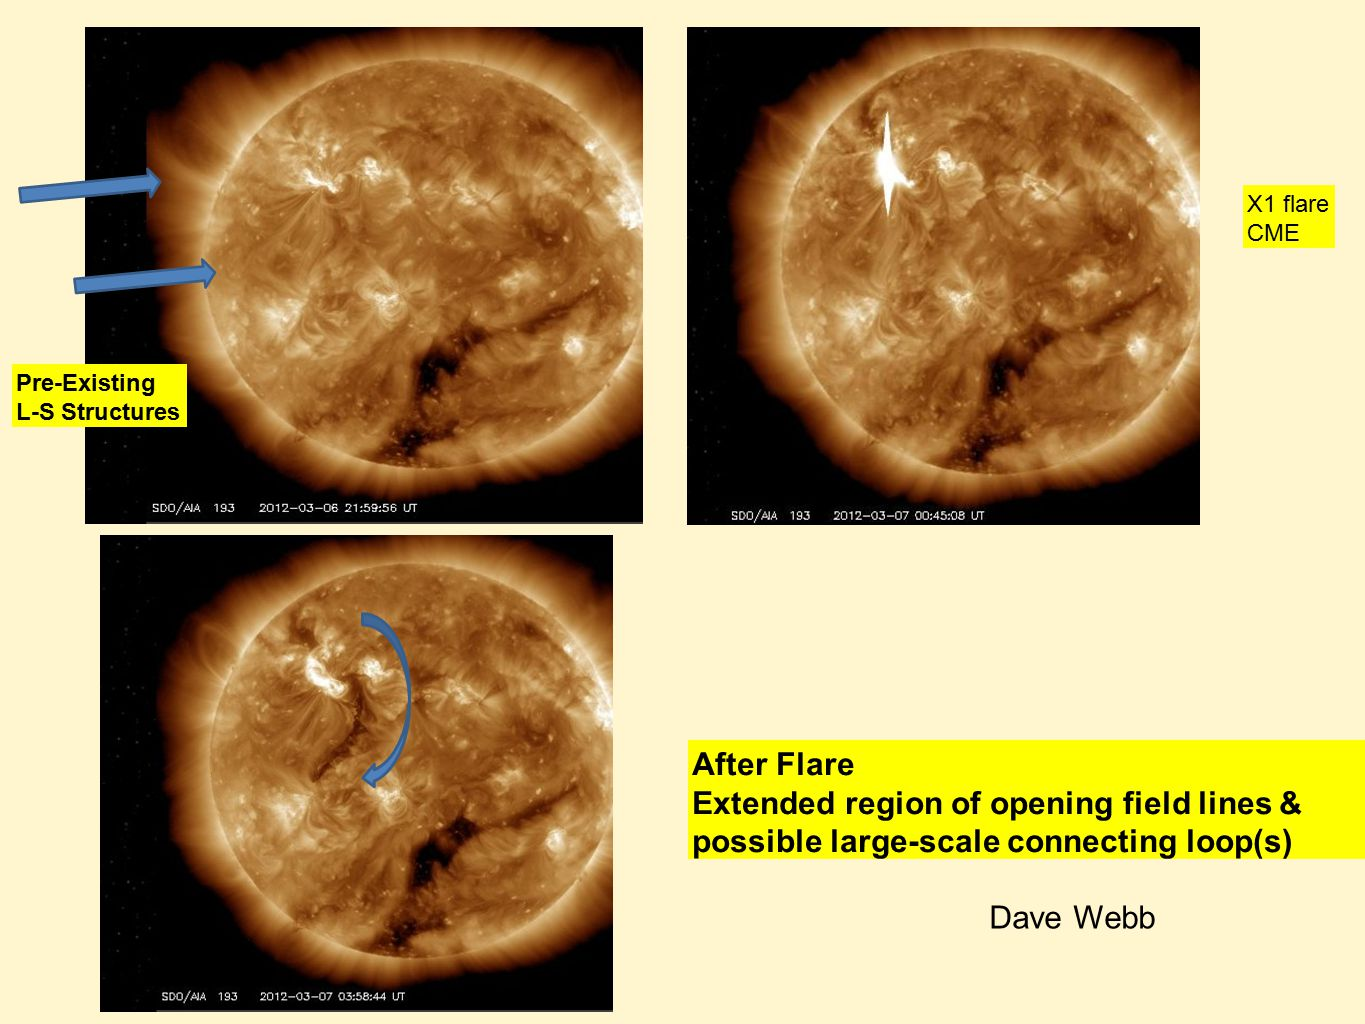 Pre-Existing L-S Structures X1 flare CME After Flare Extended region of opening field lines & possible large-scale connecting loop(s) Dave Webb